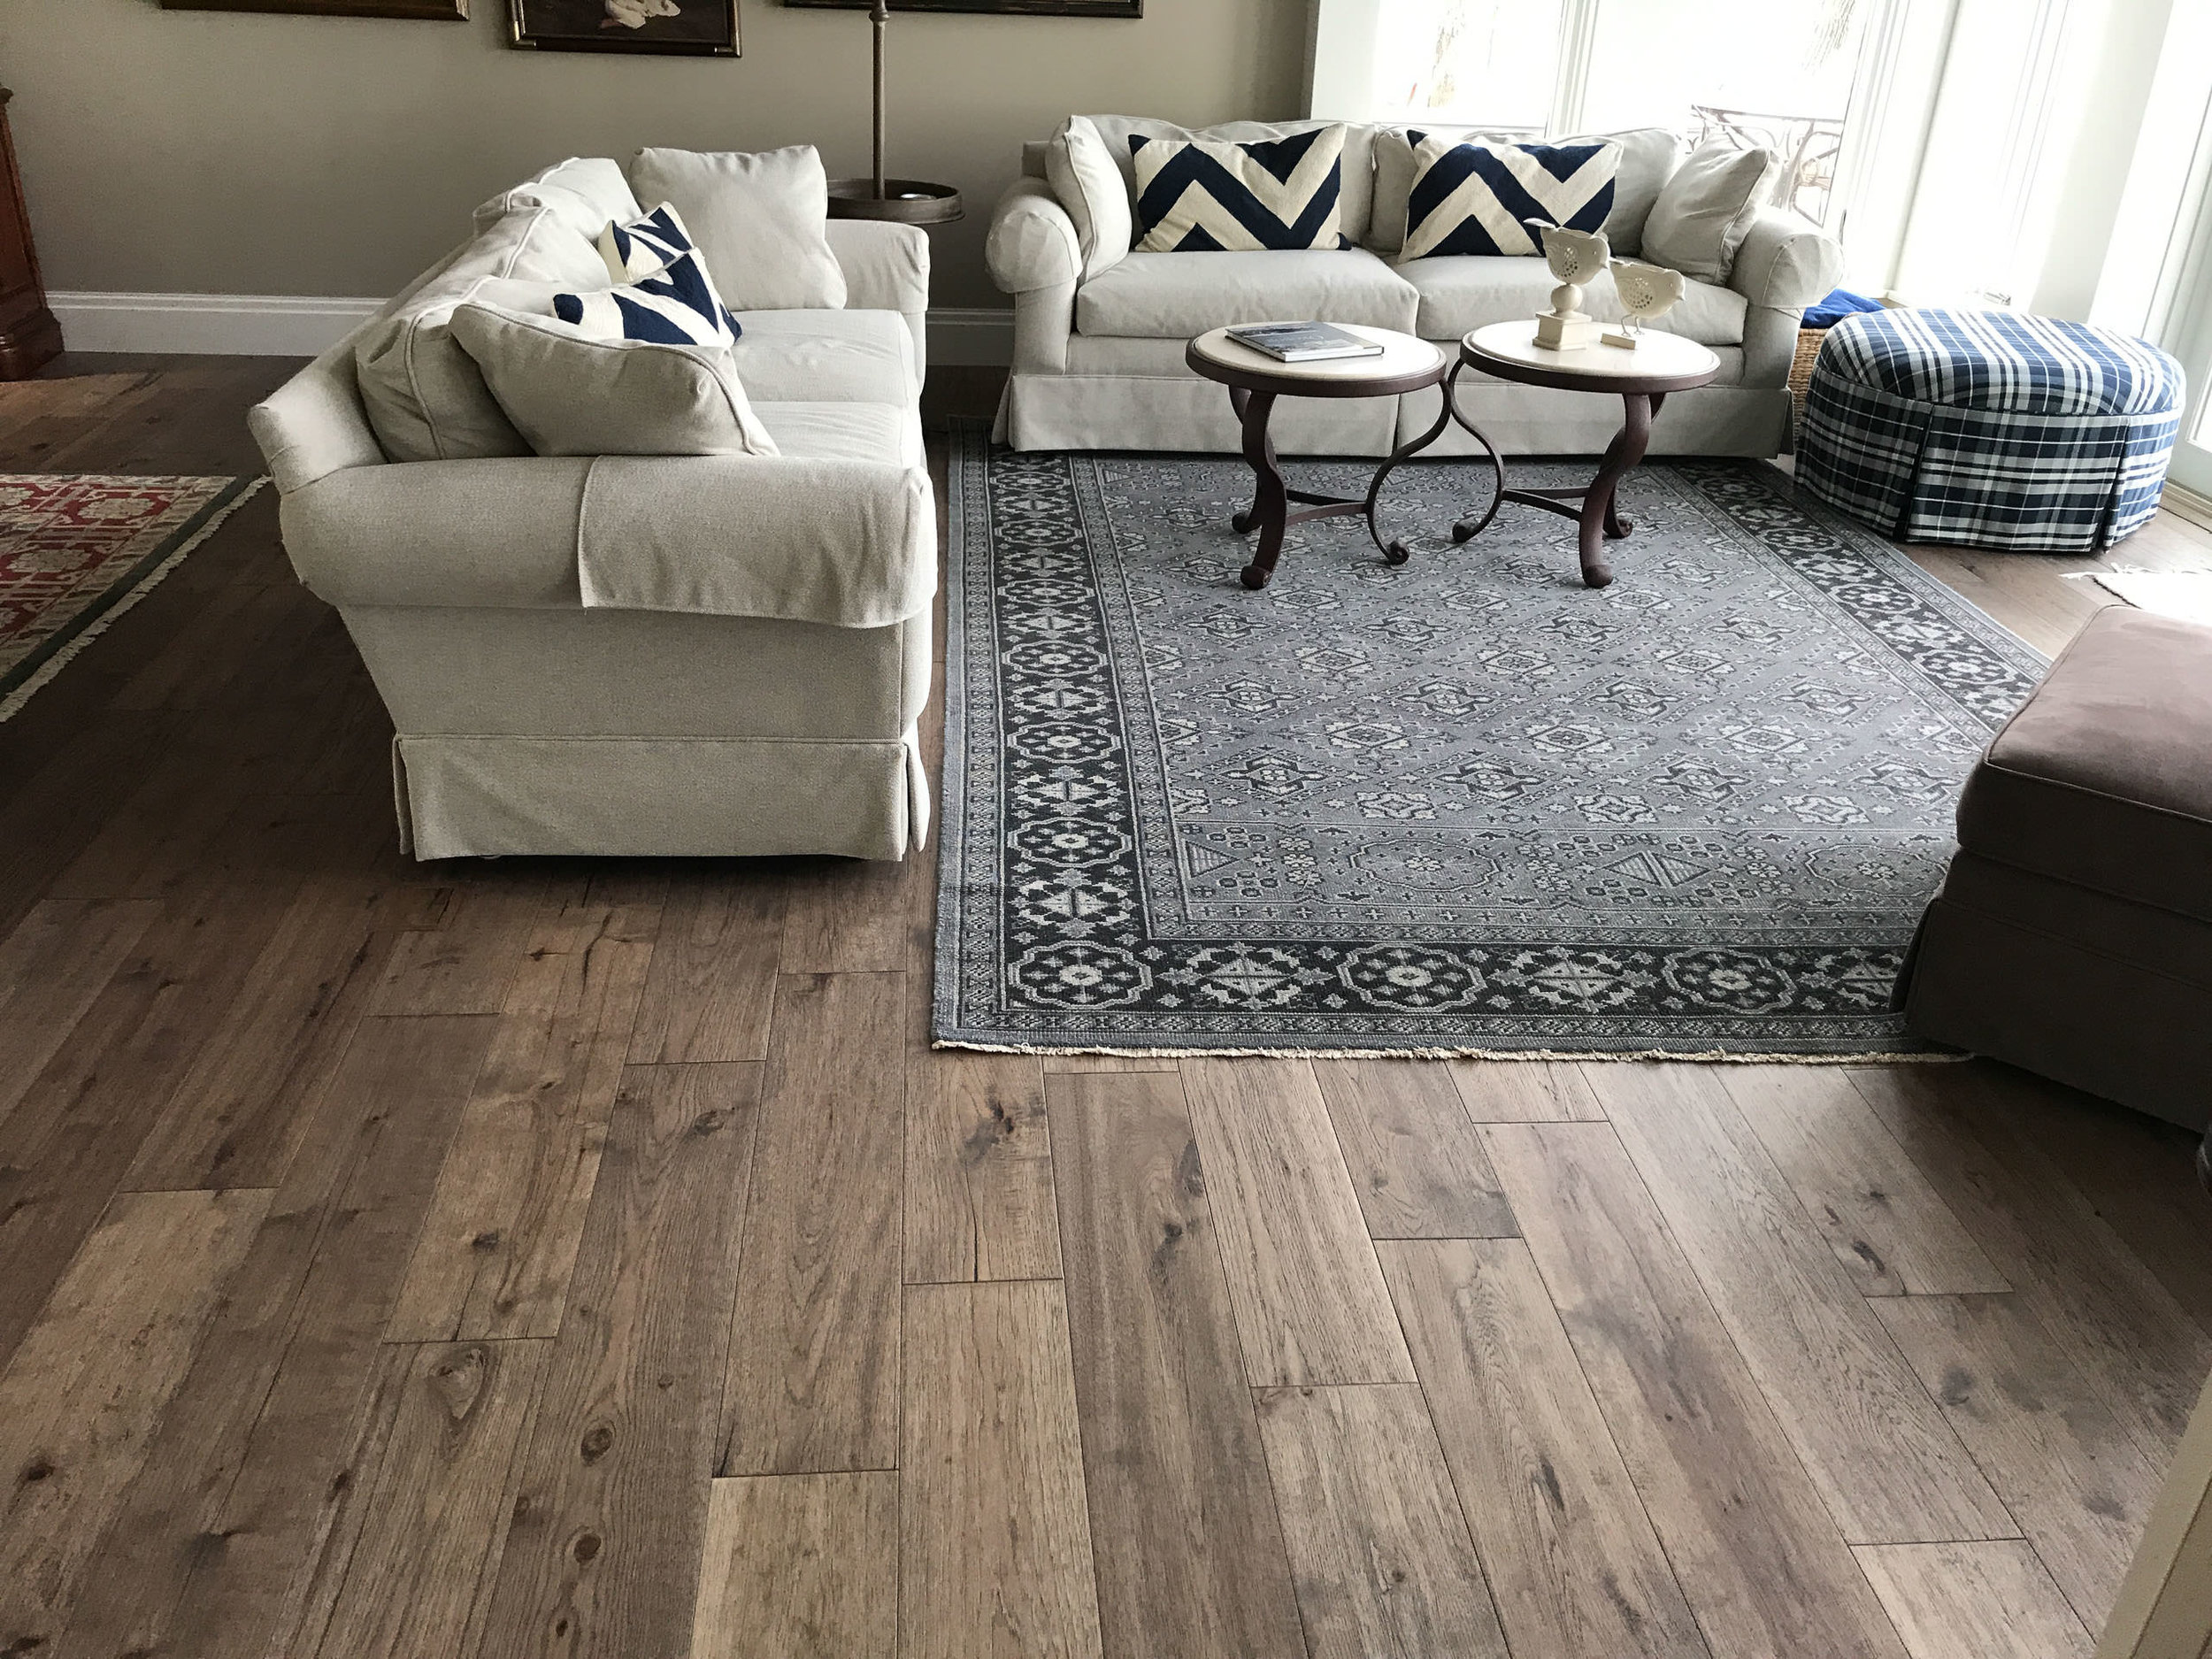 Living space wood floor-2560.JPG